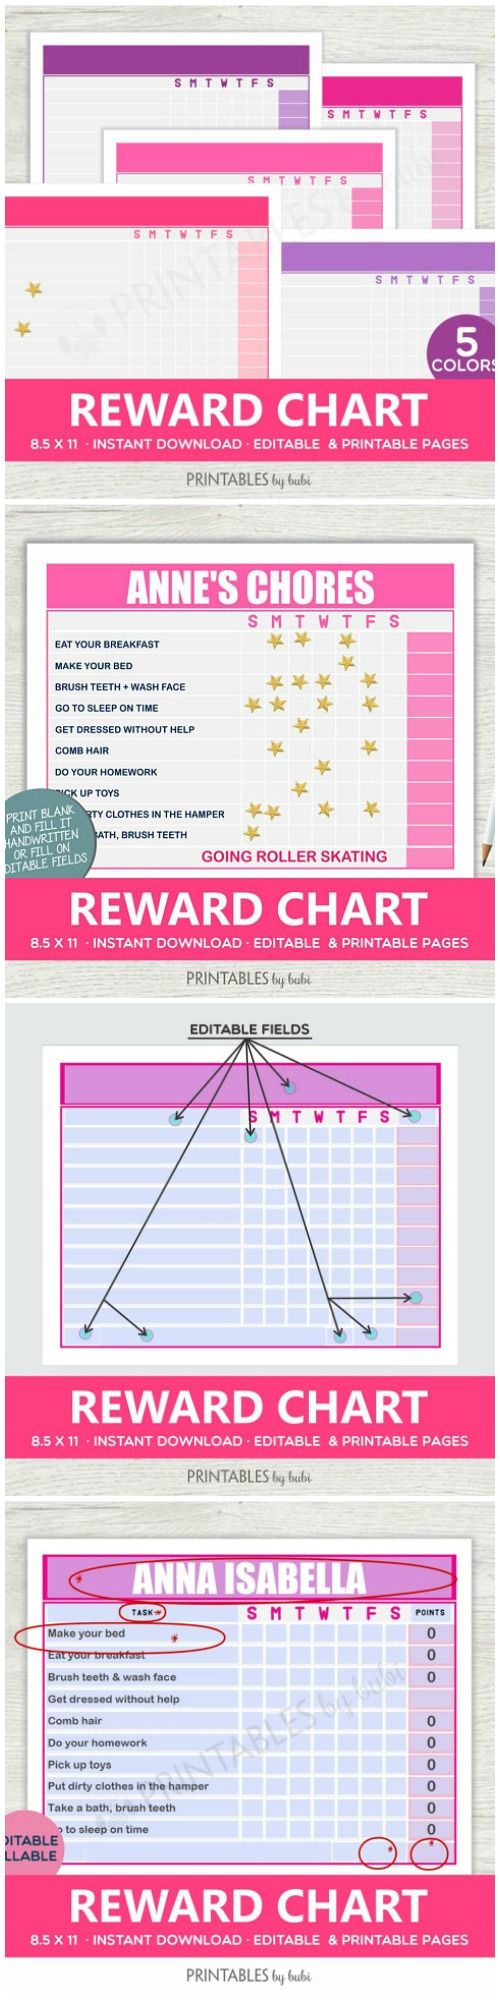 "Kids Chore Chart | Chore Chart Printable Editable, Children Chore Chart | Daily Chores Chart, Easter Printable, Instant Download - 8.5X11"" #chorechart #reward #printable #kids #family #affiliate"